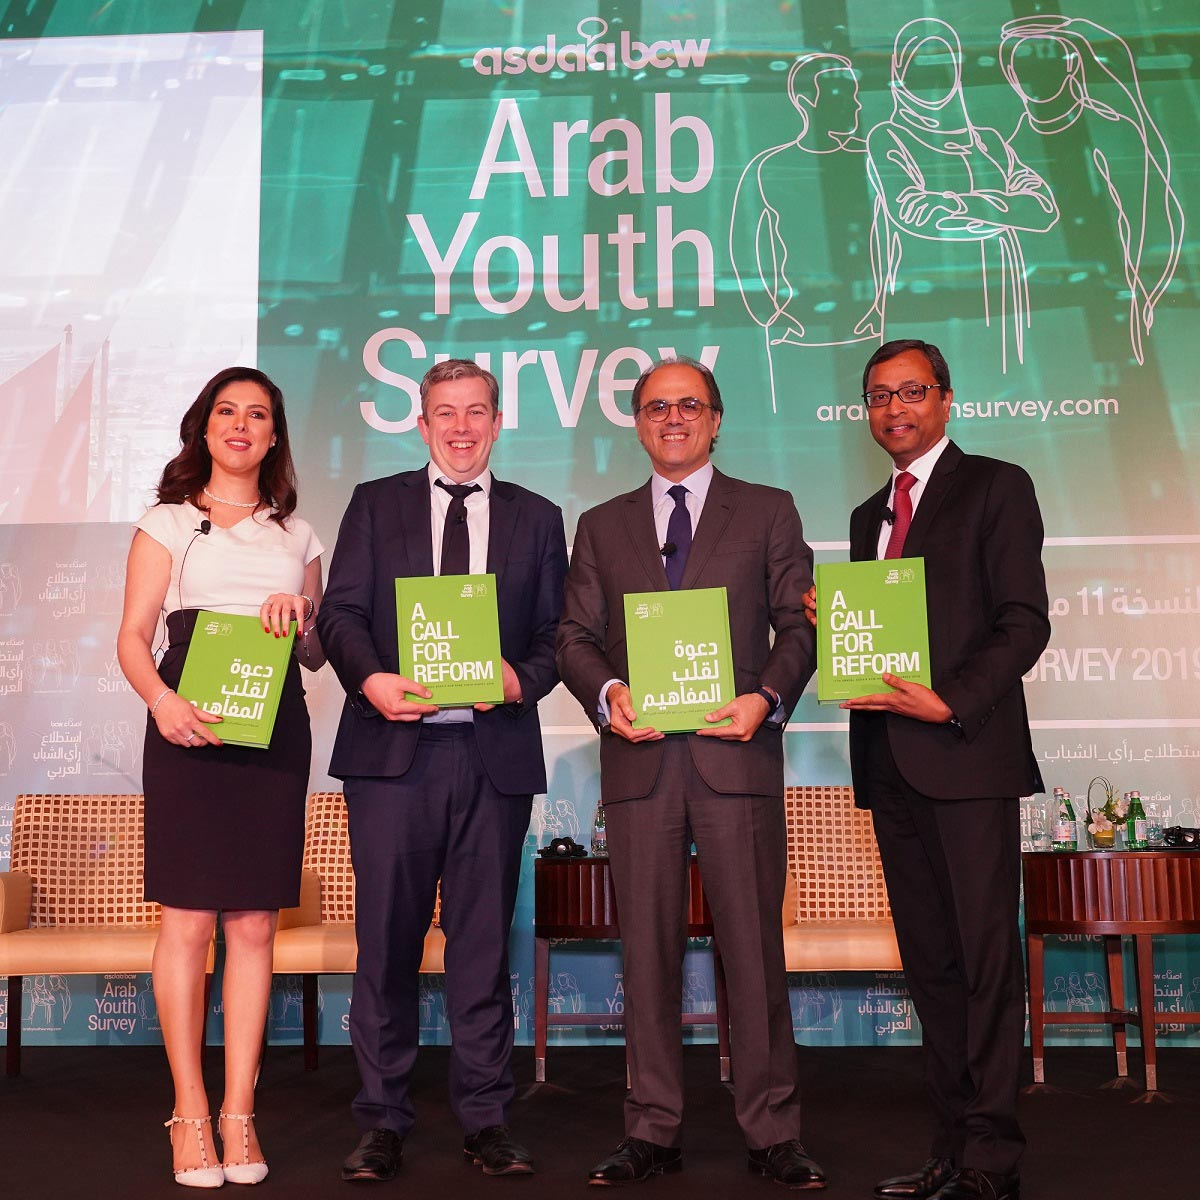 (L-R) Broadcast Journalist May Bin Khadra, Vice-President of  EMEA, PSB Rob Vance, Director of the Middle East and Central Asia Department at the International Monetary Fund Jihad Azour and President of ASDA'A BCW Sunil John.			      (Courtesy of Arab Youth Survey)